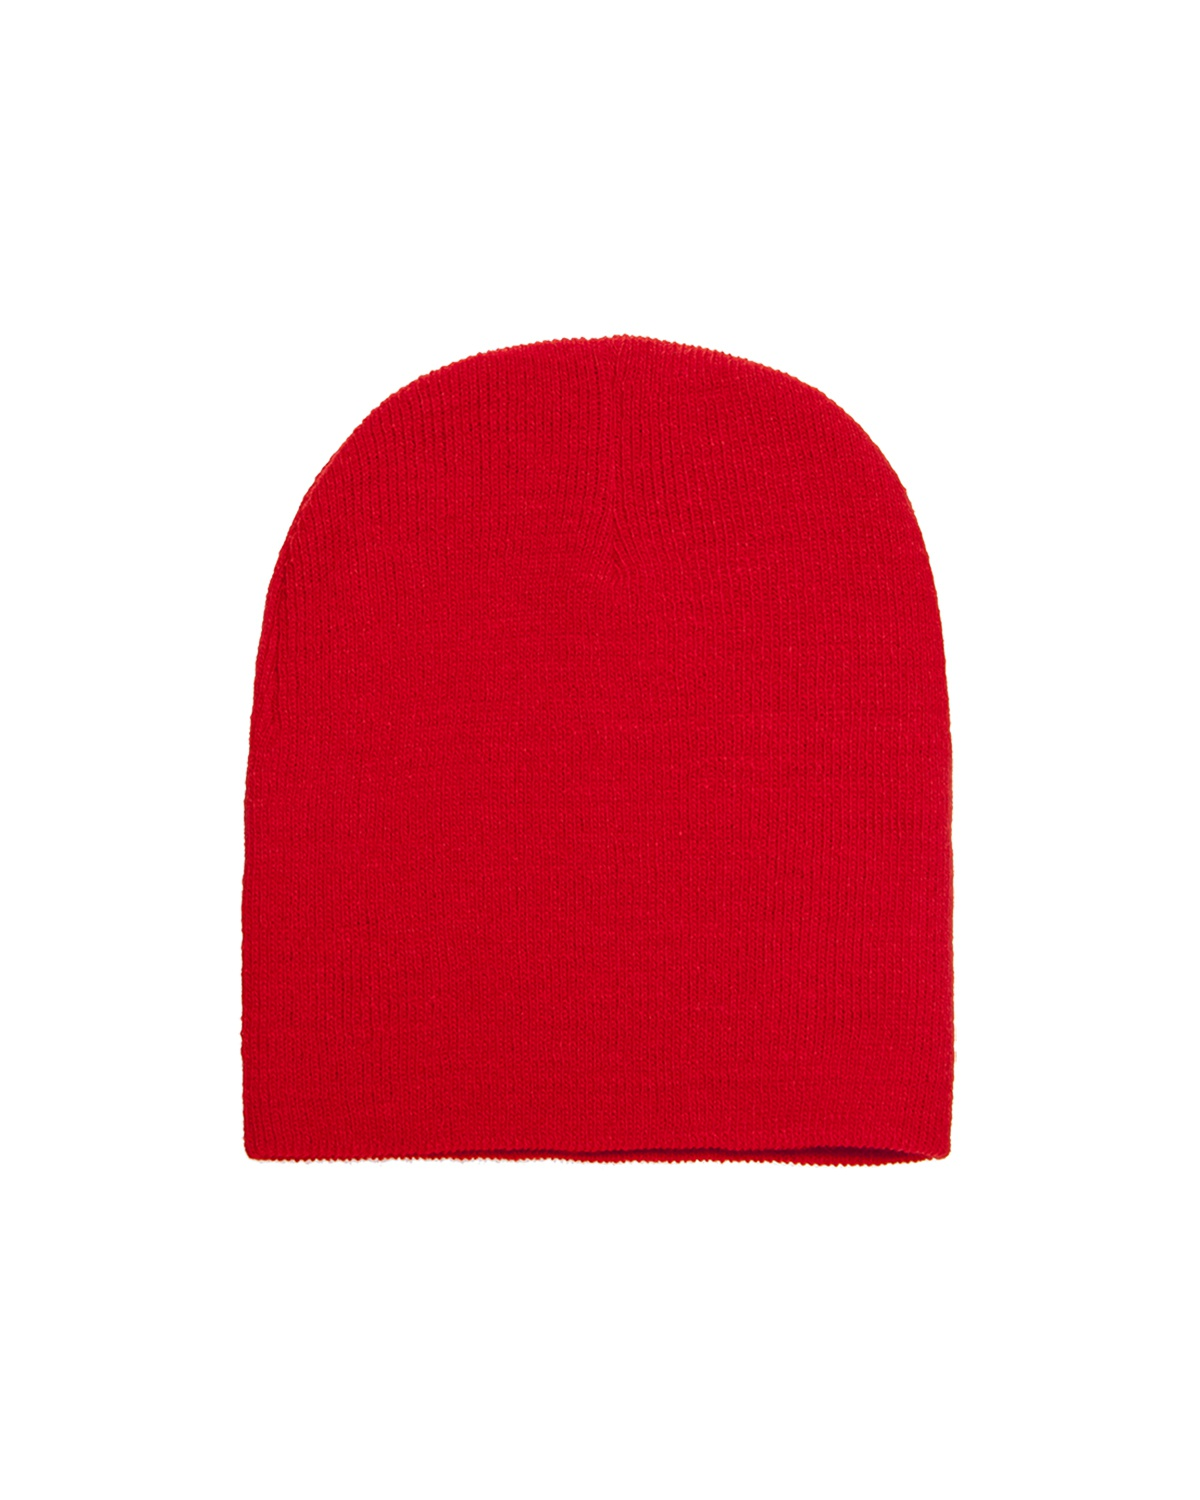 83eb01e50931d8 Yupoong 1500 Adult Knit Beanie - VeeTrends.com